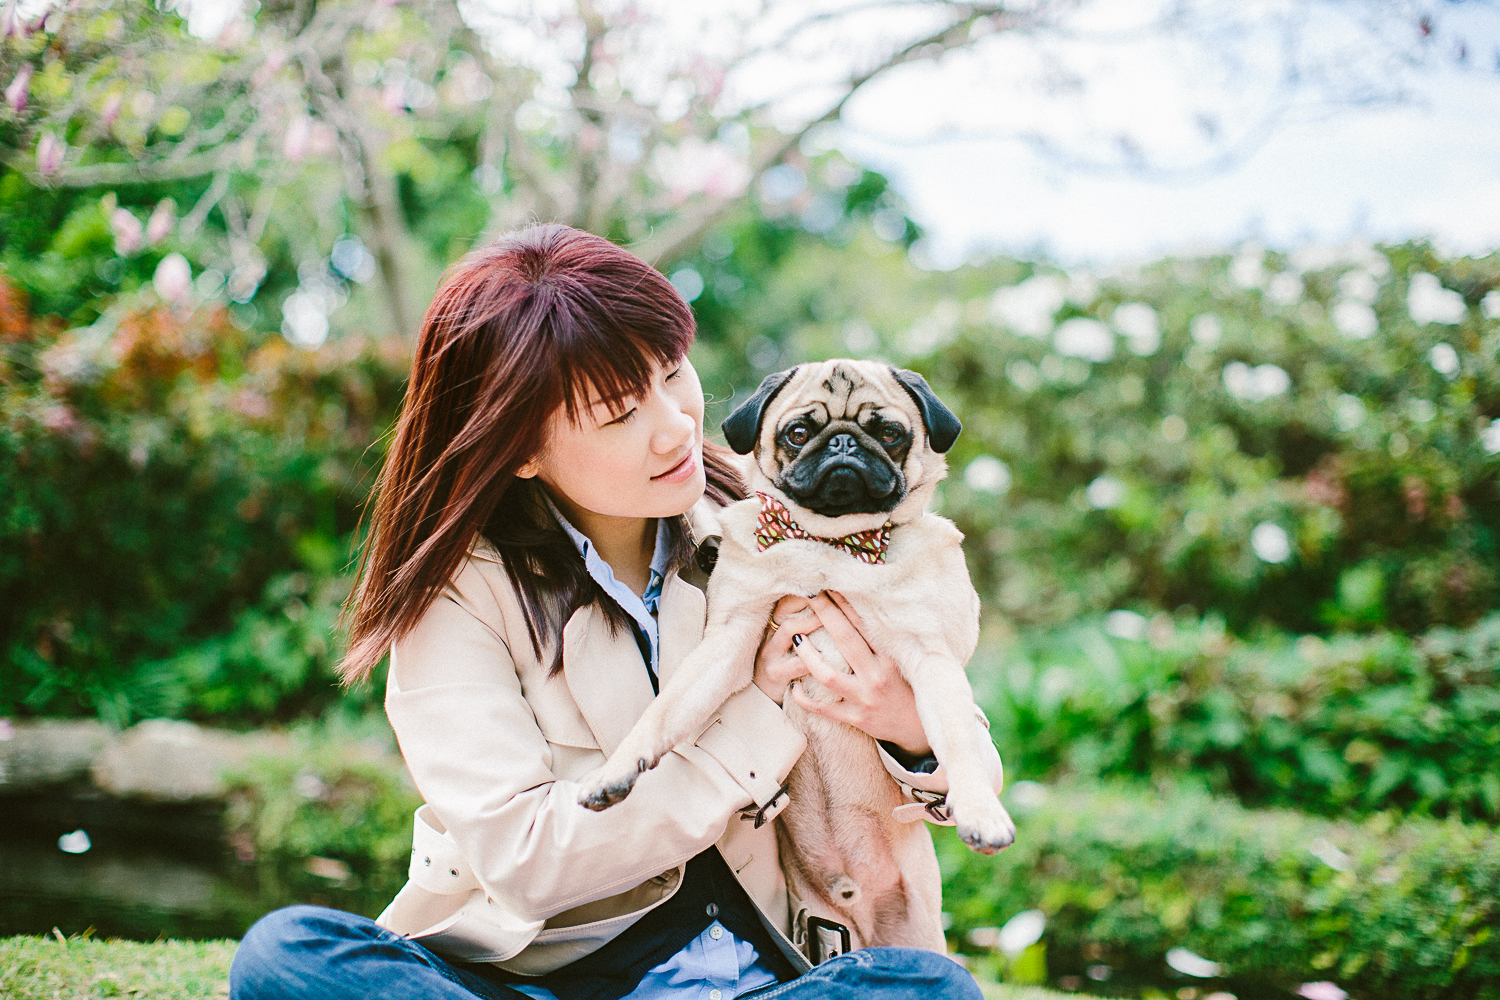 twoguineapigs_pet_photography_oh_jaffa_picnic_pugs_1500-10.jpg